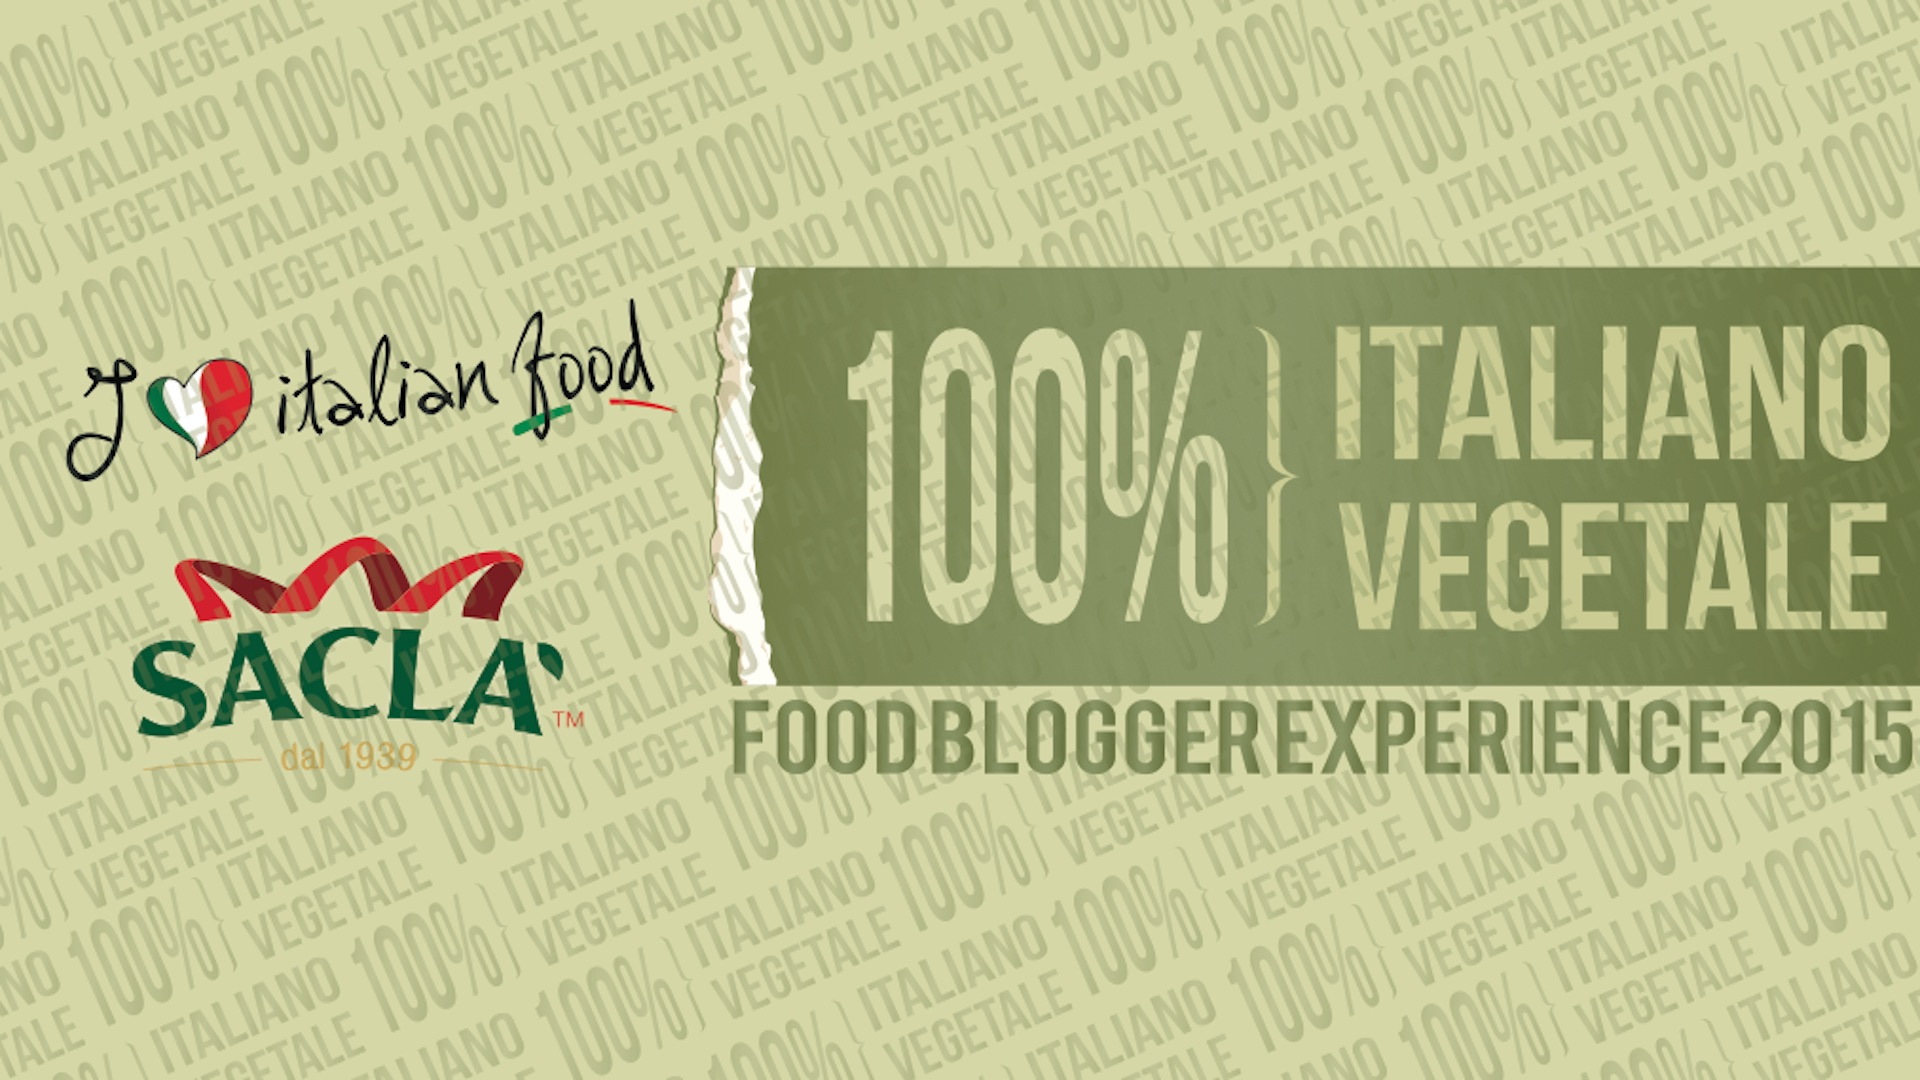 I Love Italian Food & Saclà: 100% italiano, 100% vegetale!